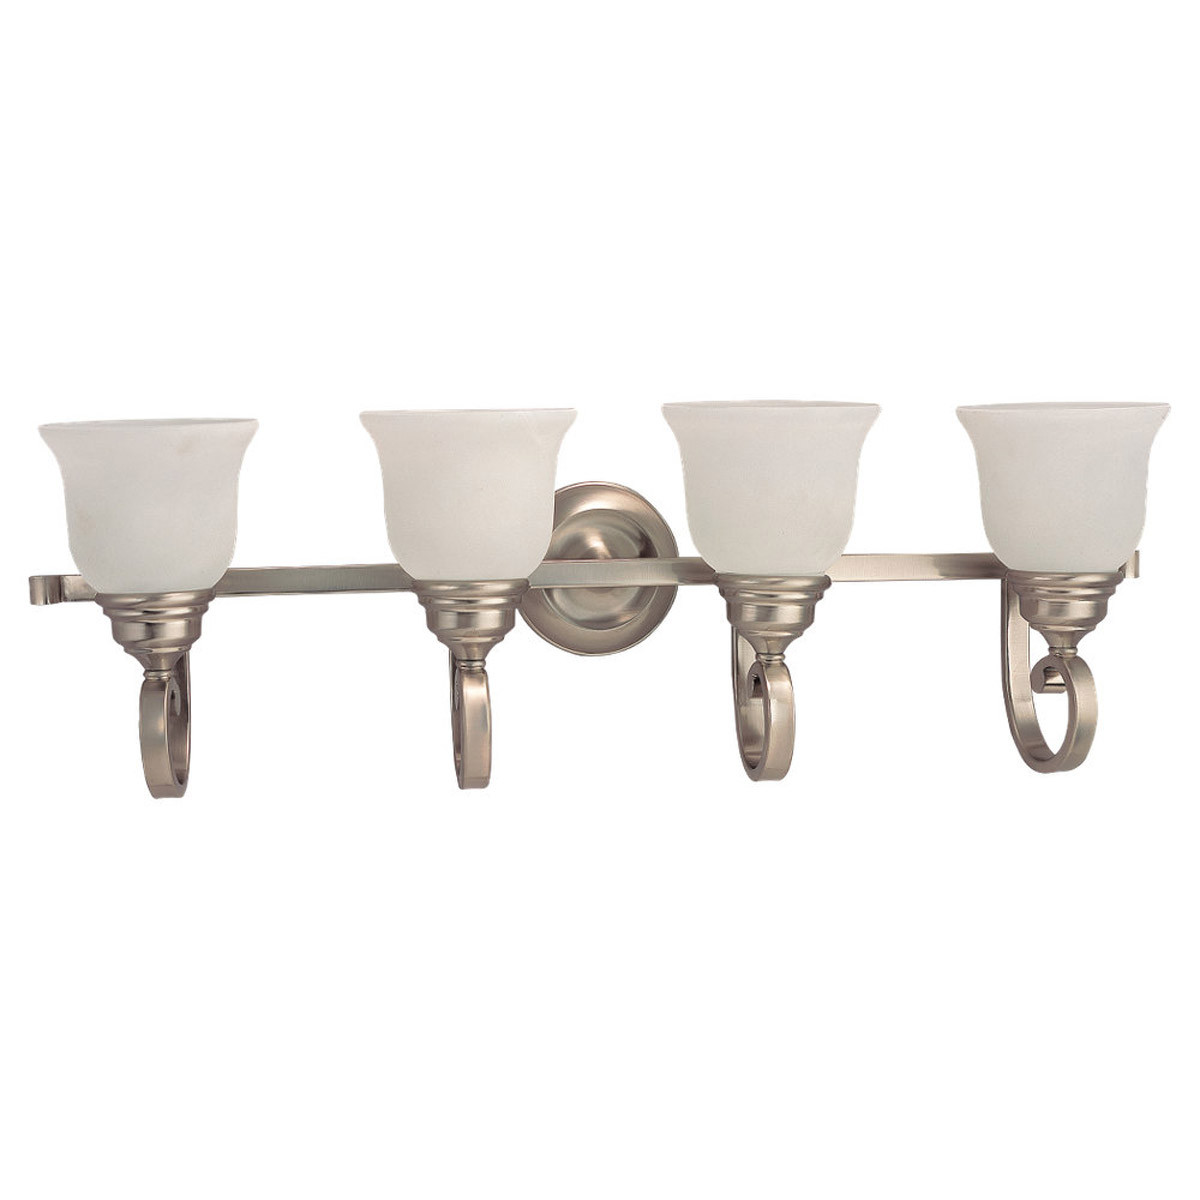 Sea Gull Lighting Serenity 4 Light Bath Vanity in Brushed Nickel 44192-962 photo